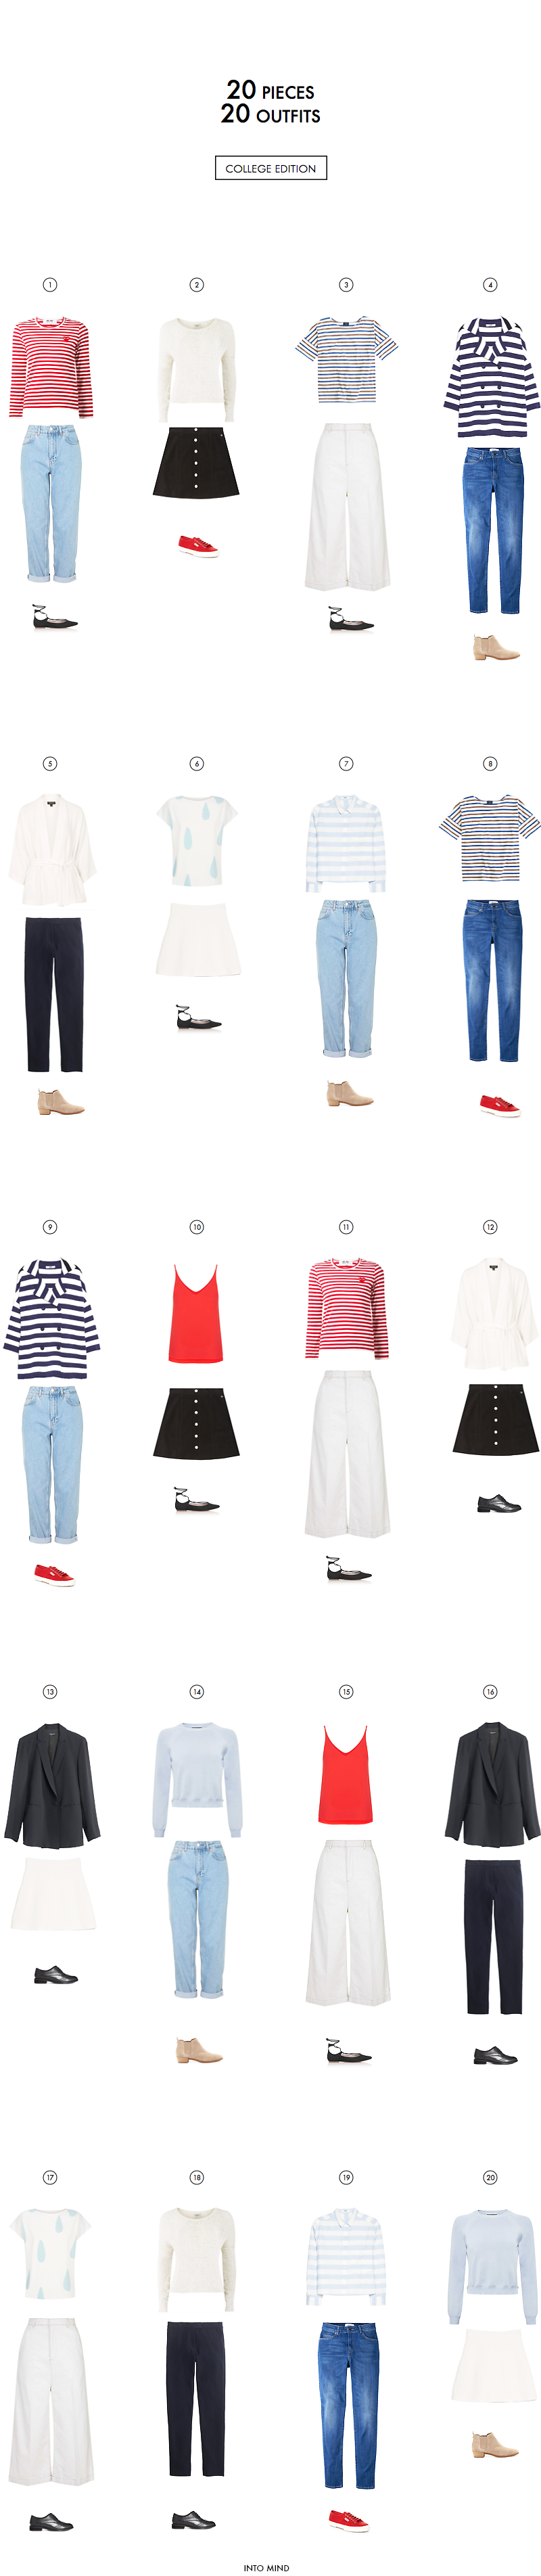 College Capsule Wardrobe: 20 outfits with 20 pieces